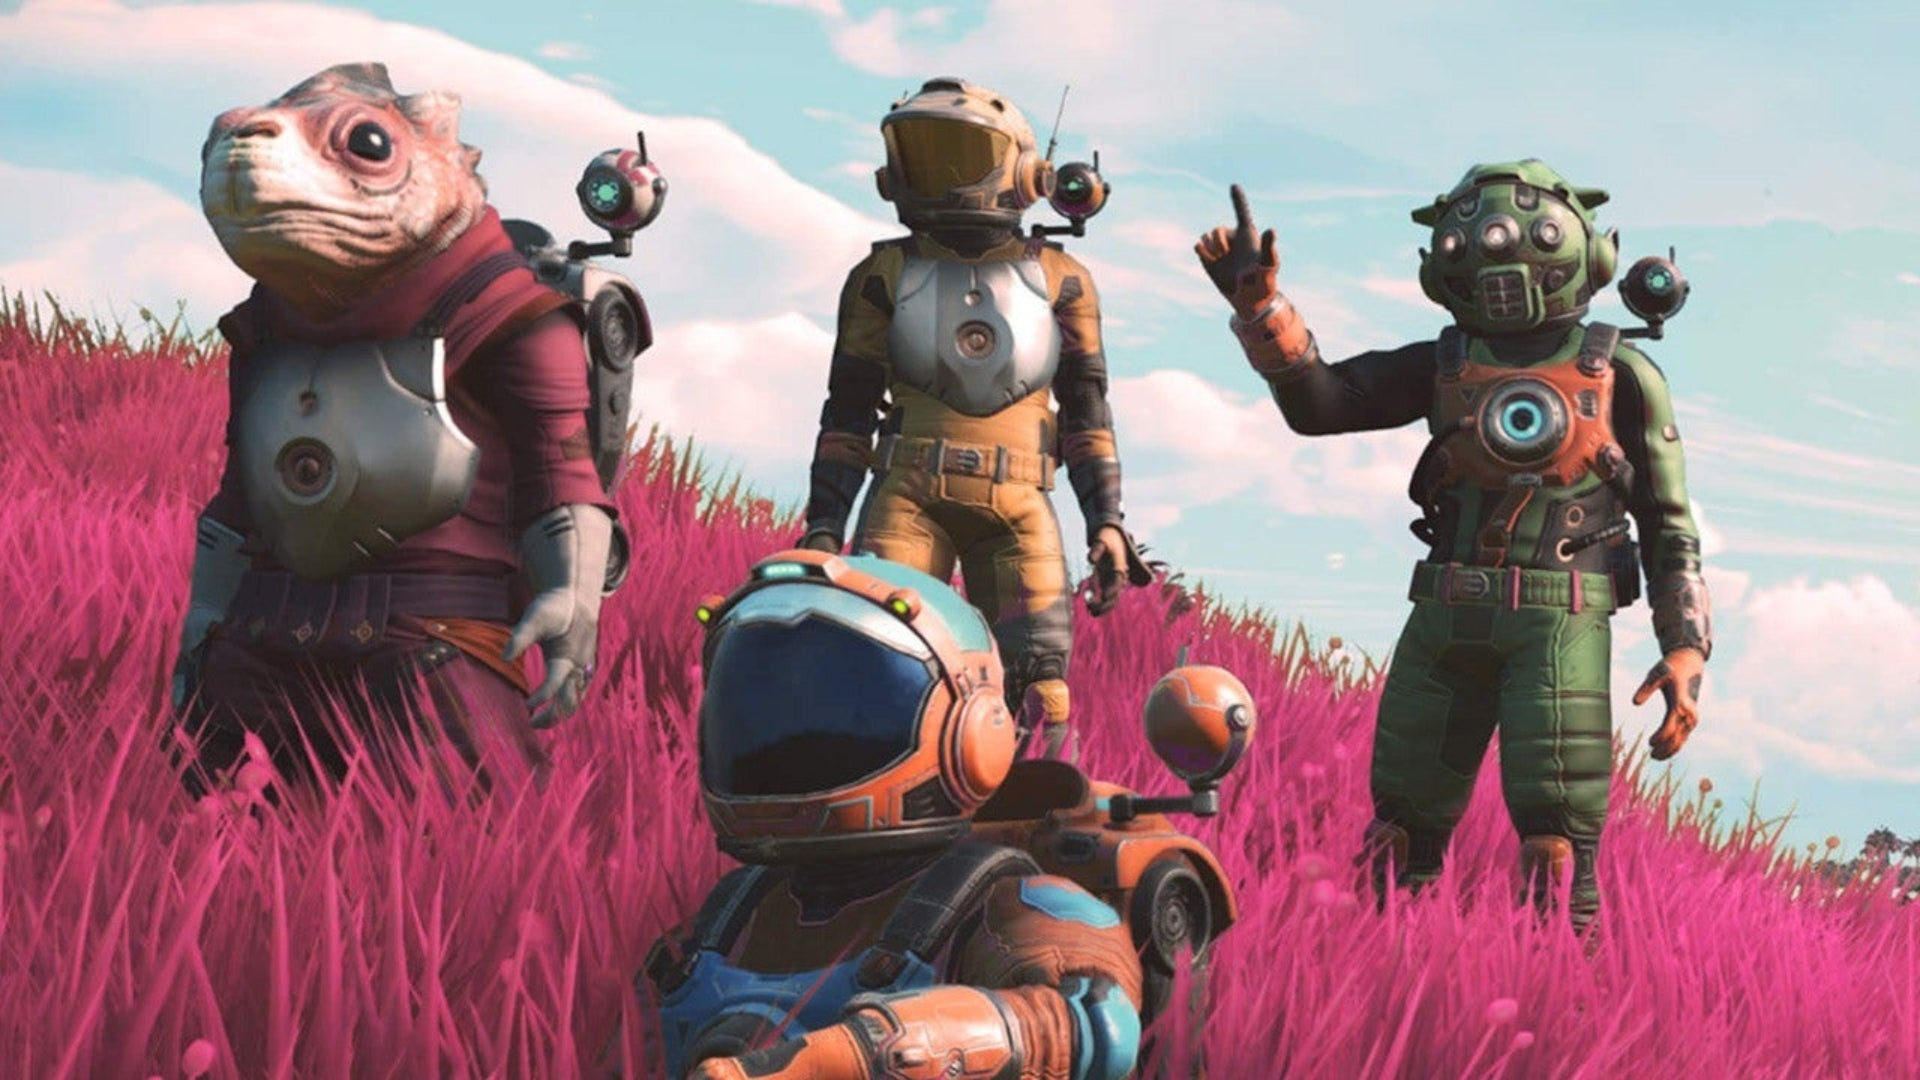 no mans sky 1621906996170.jpg?width=640&fit=bounds&height=480&quality=20&dpr=0